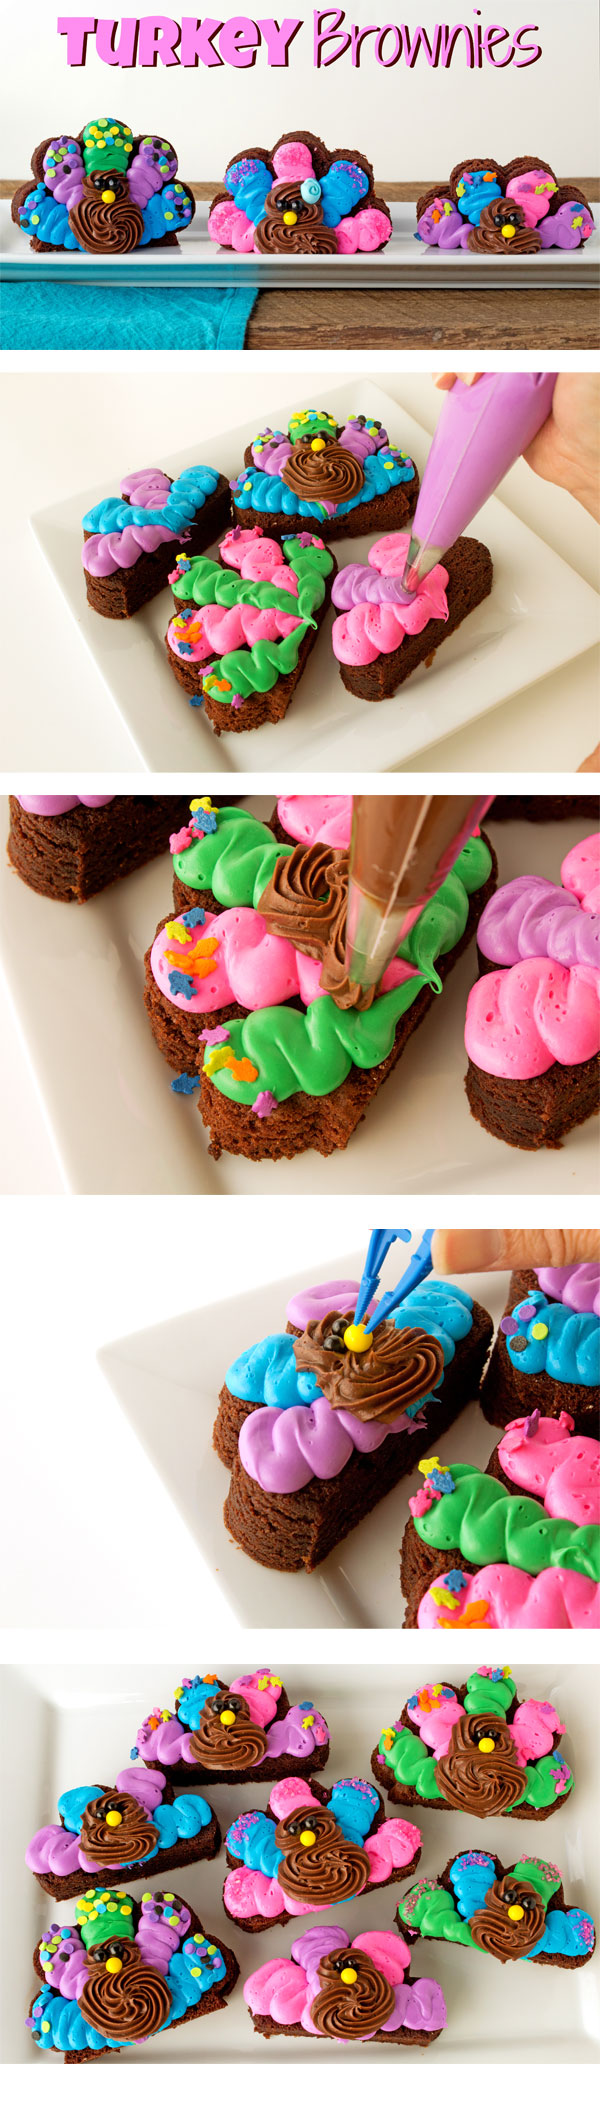 Cute Simple Turkey Brownies with Funfetti Colored Frosting with www.thebearfootbaker.com